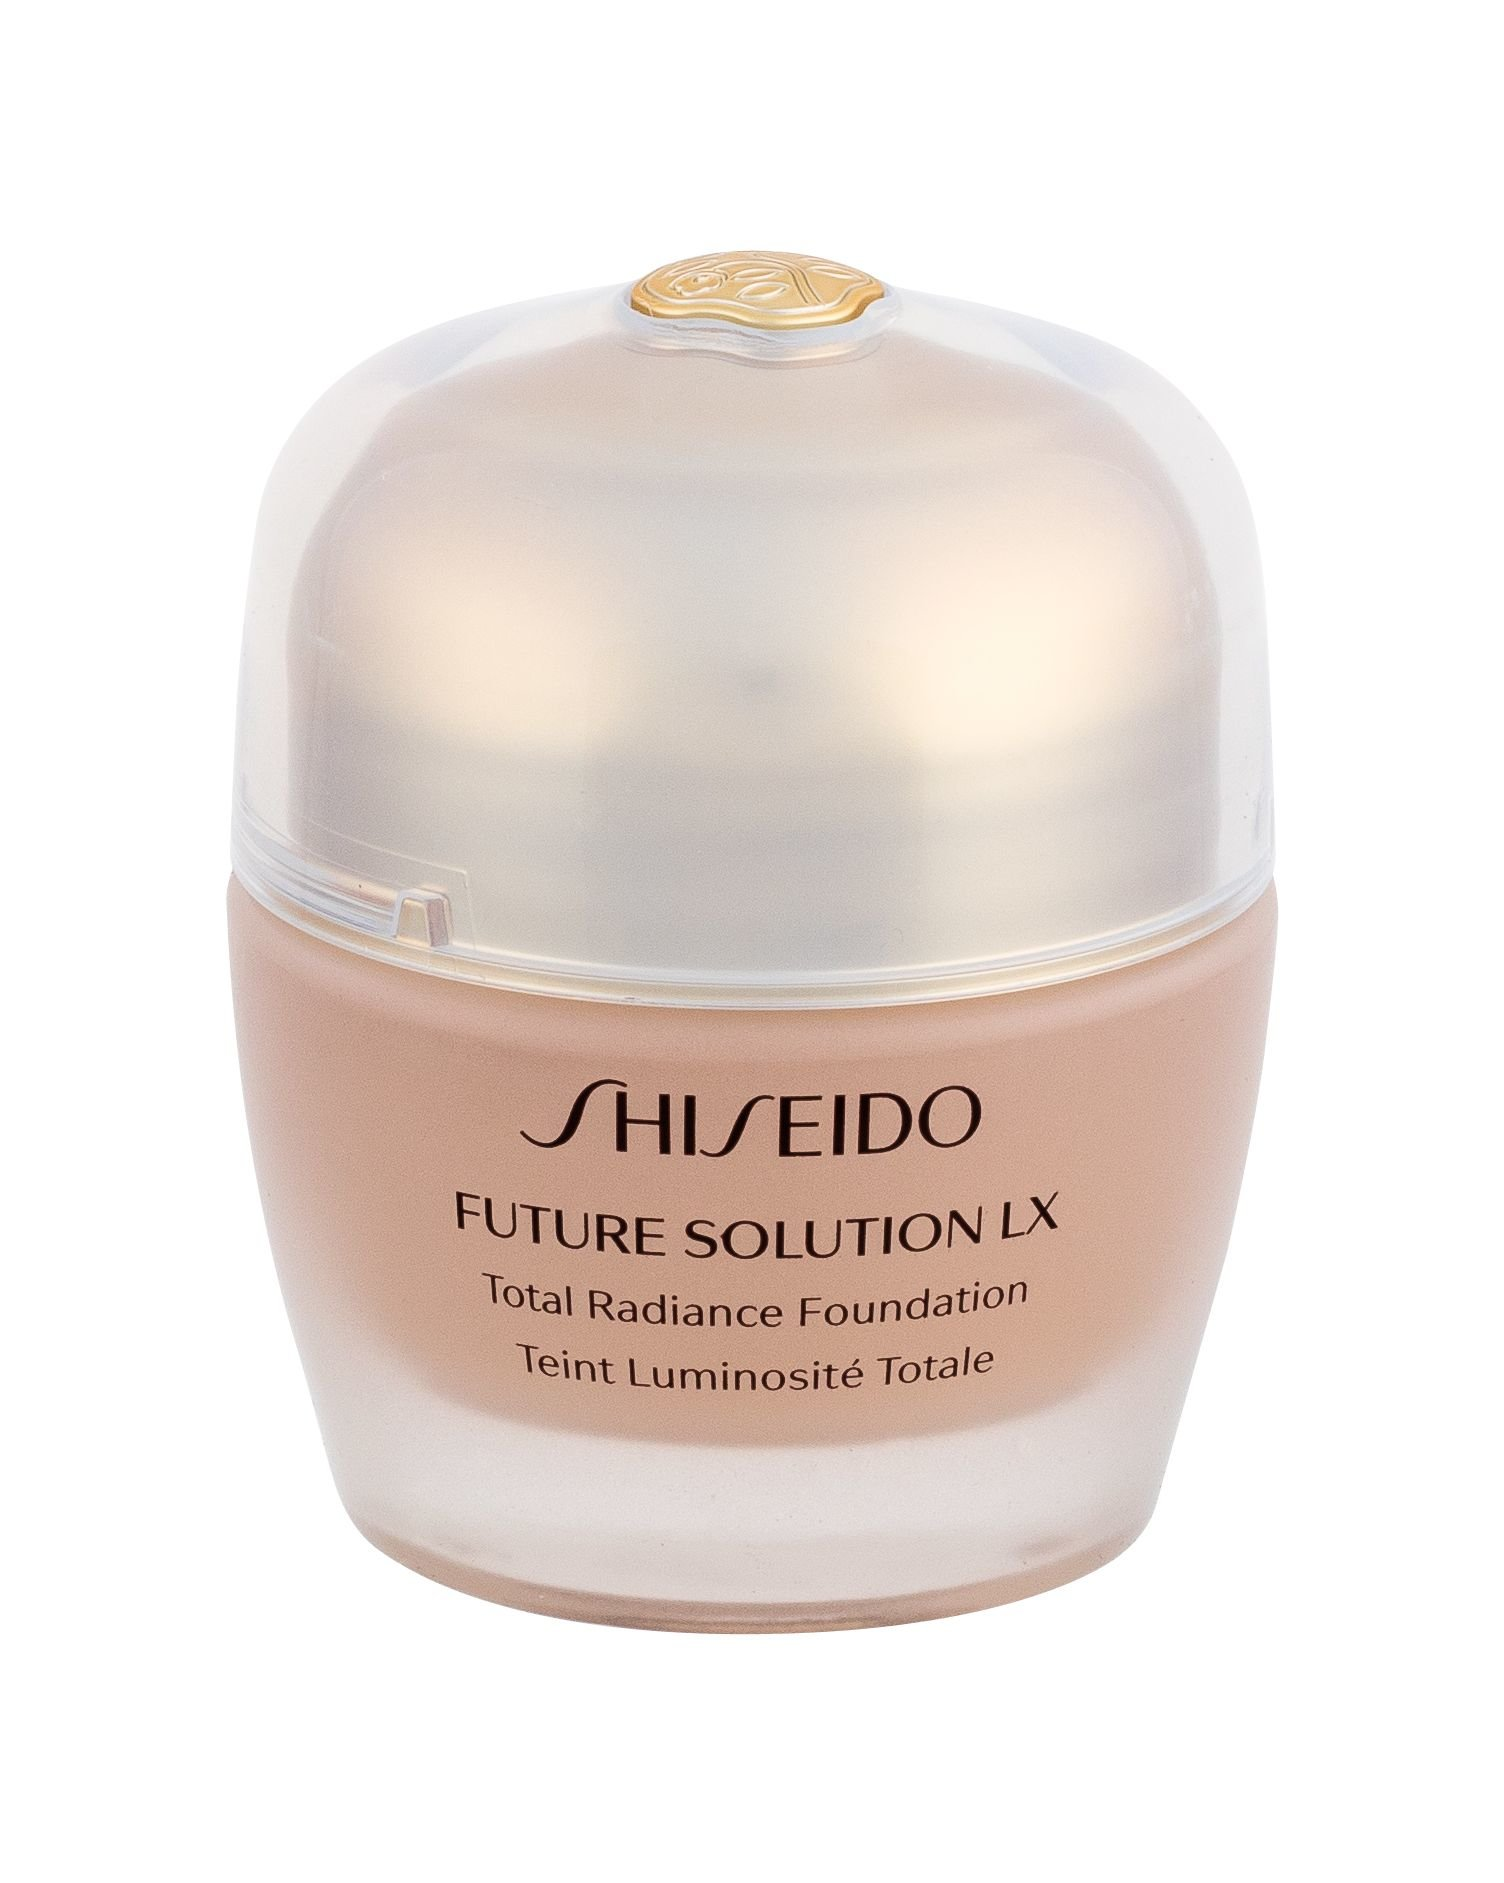 Shiseido Future Solution LX Makeup 30ml N2 Neutral